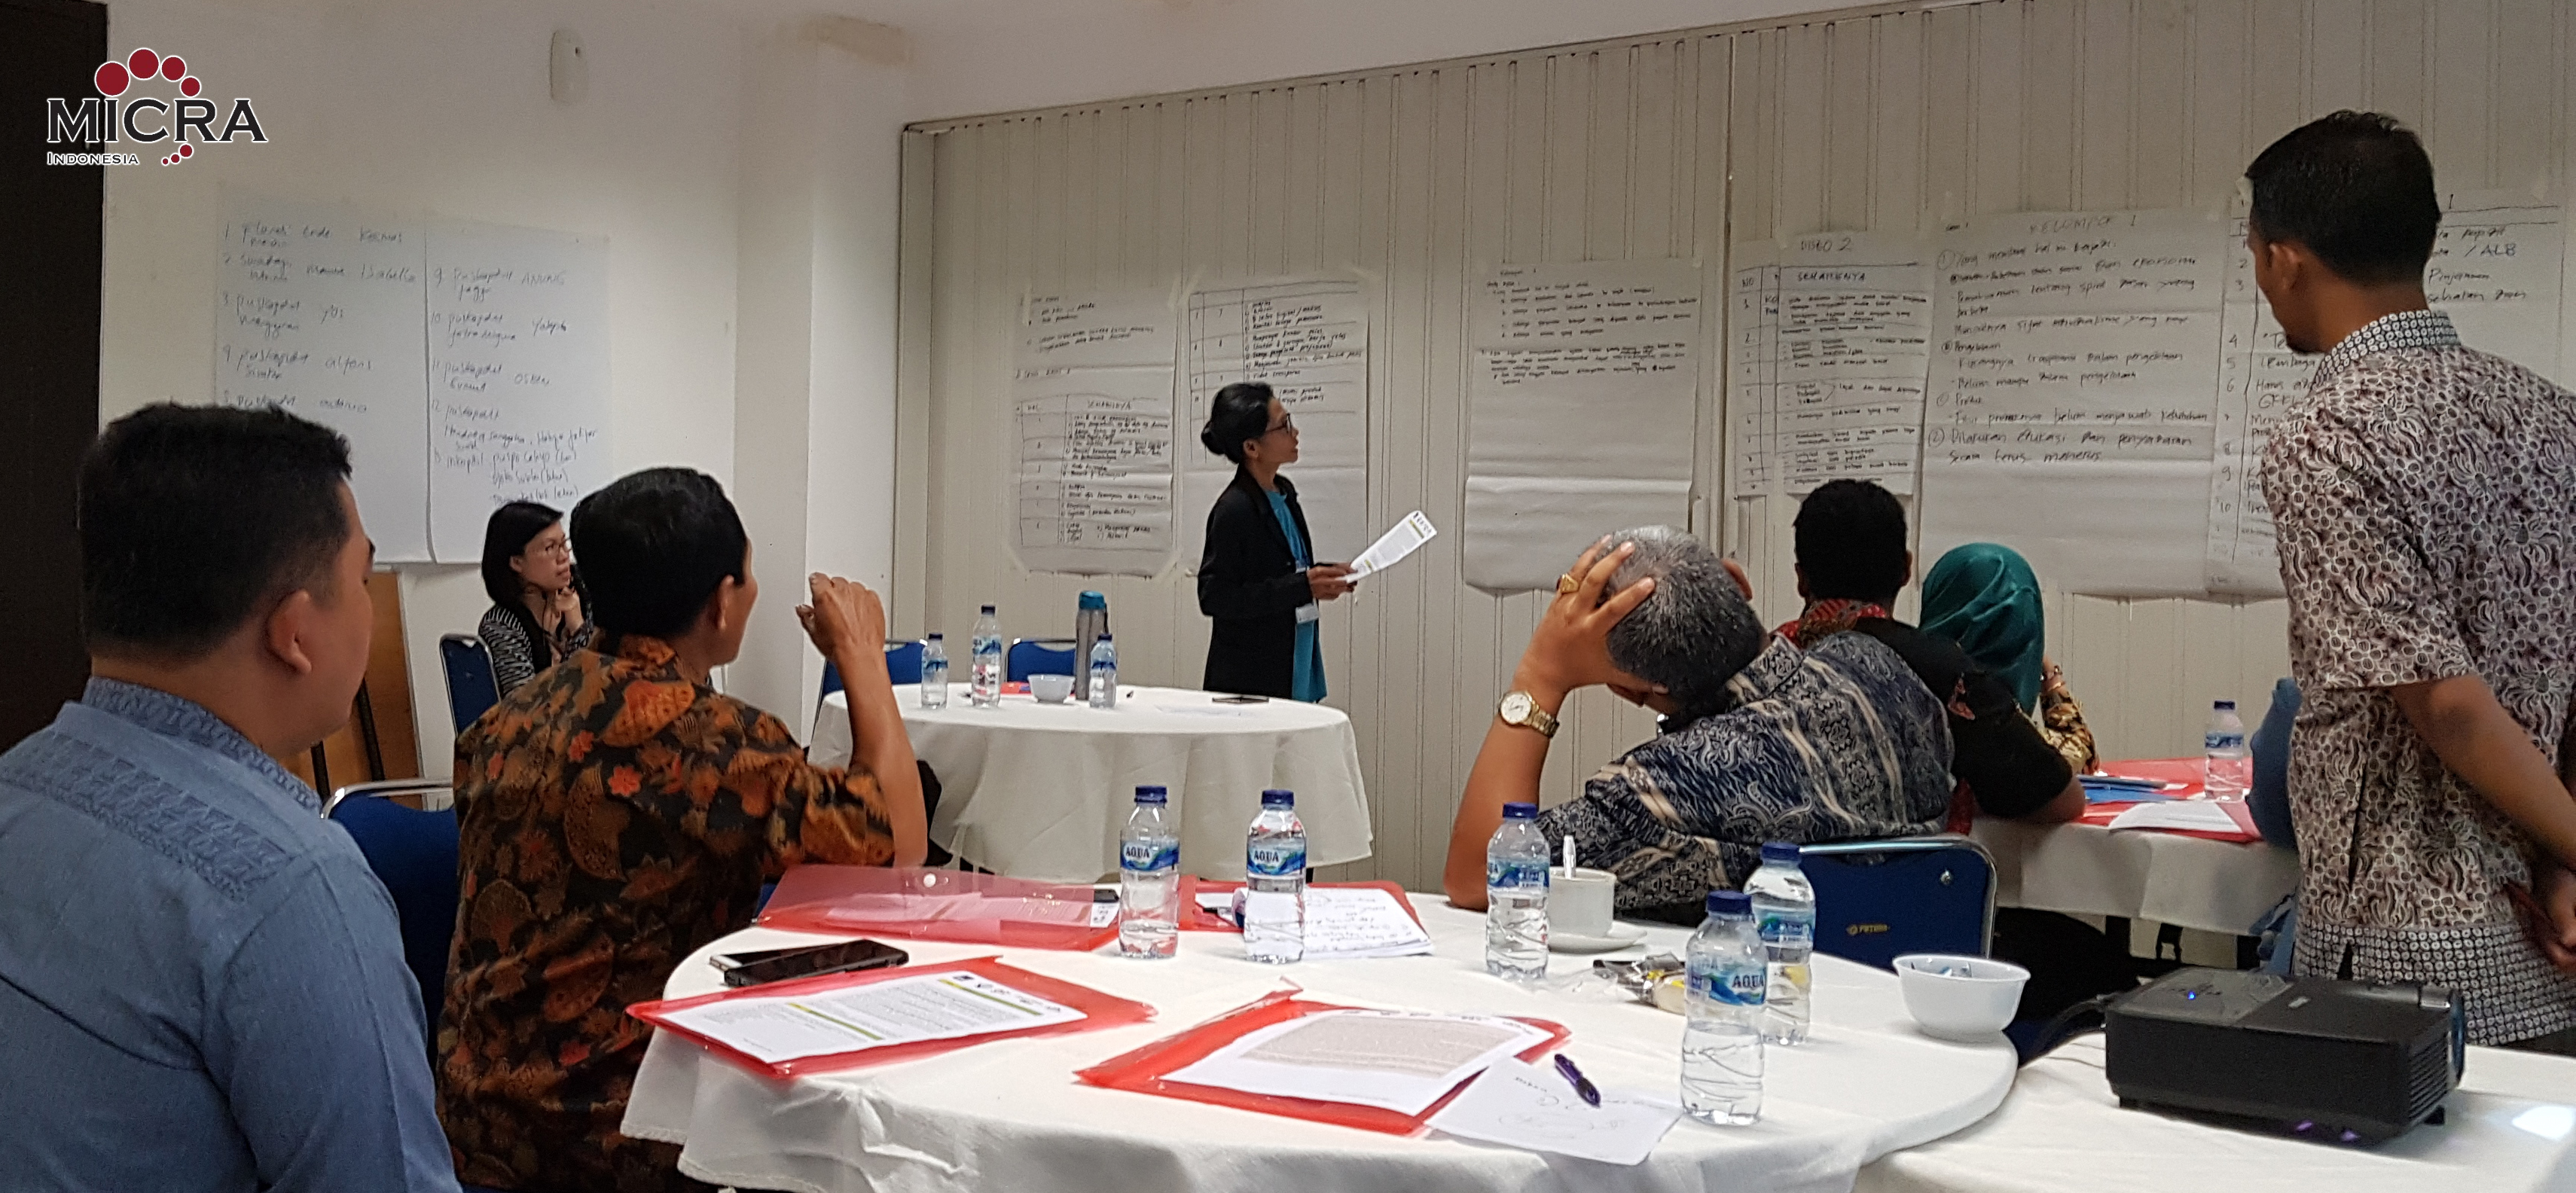 Participant ToT Jakarta present the results of their group discussions